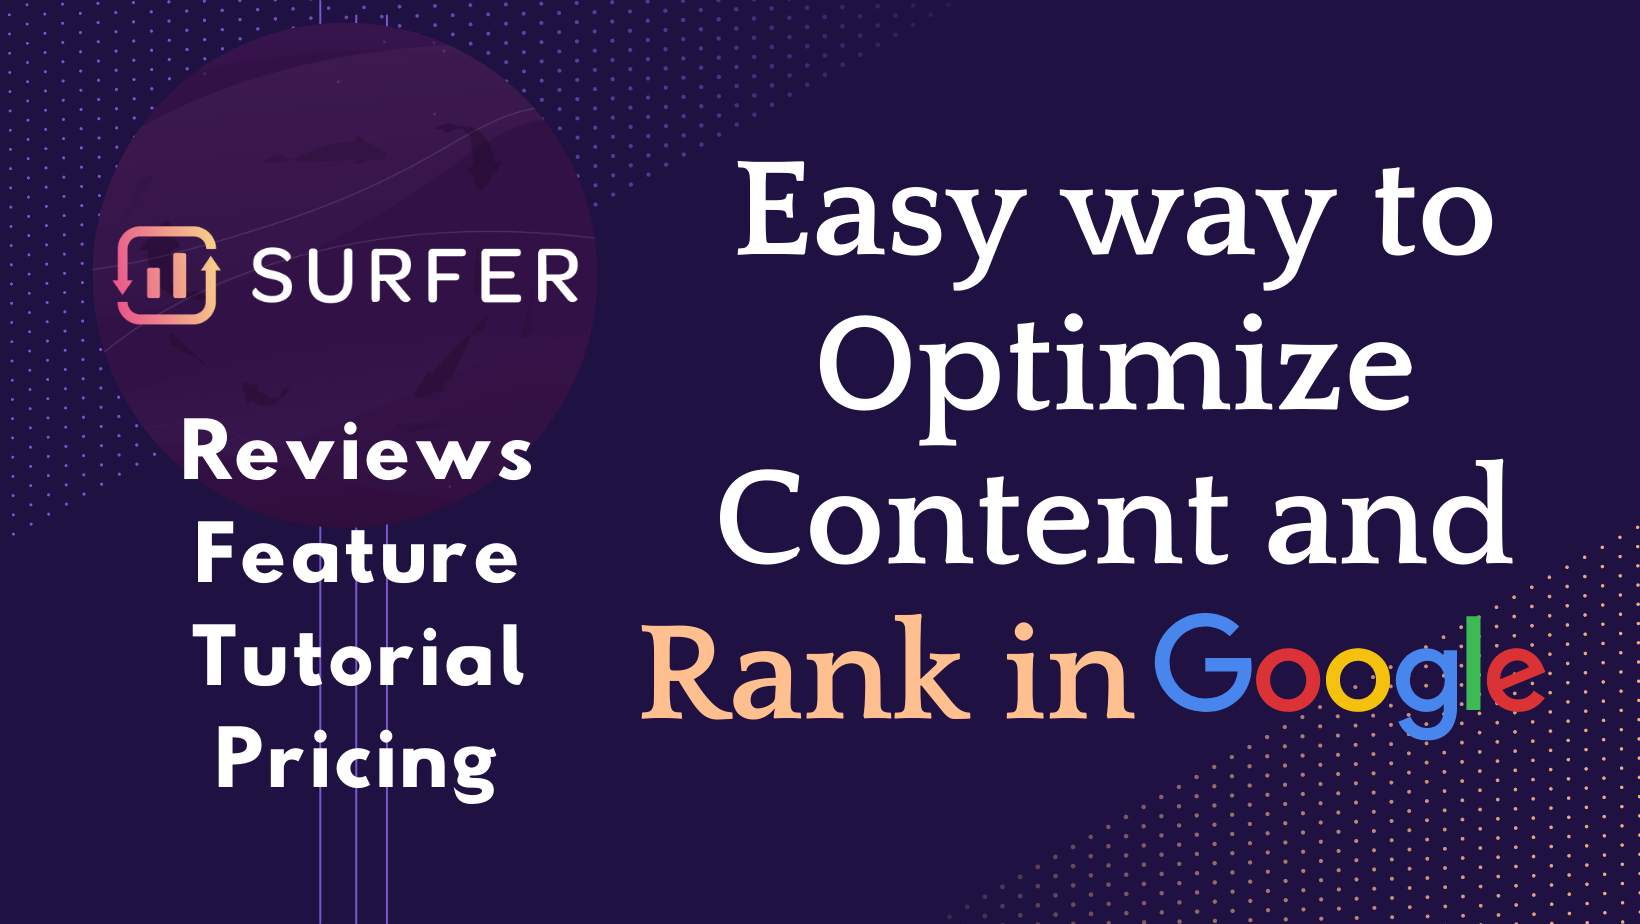 SurferSEO Reports: Straightforward Approach to Optimize Drawl material and Foul in Google